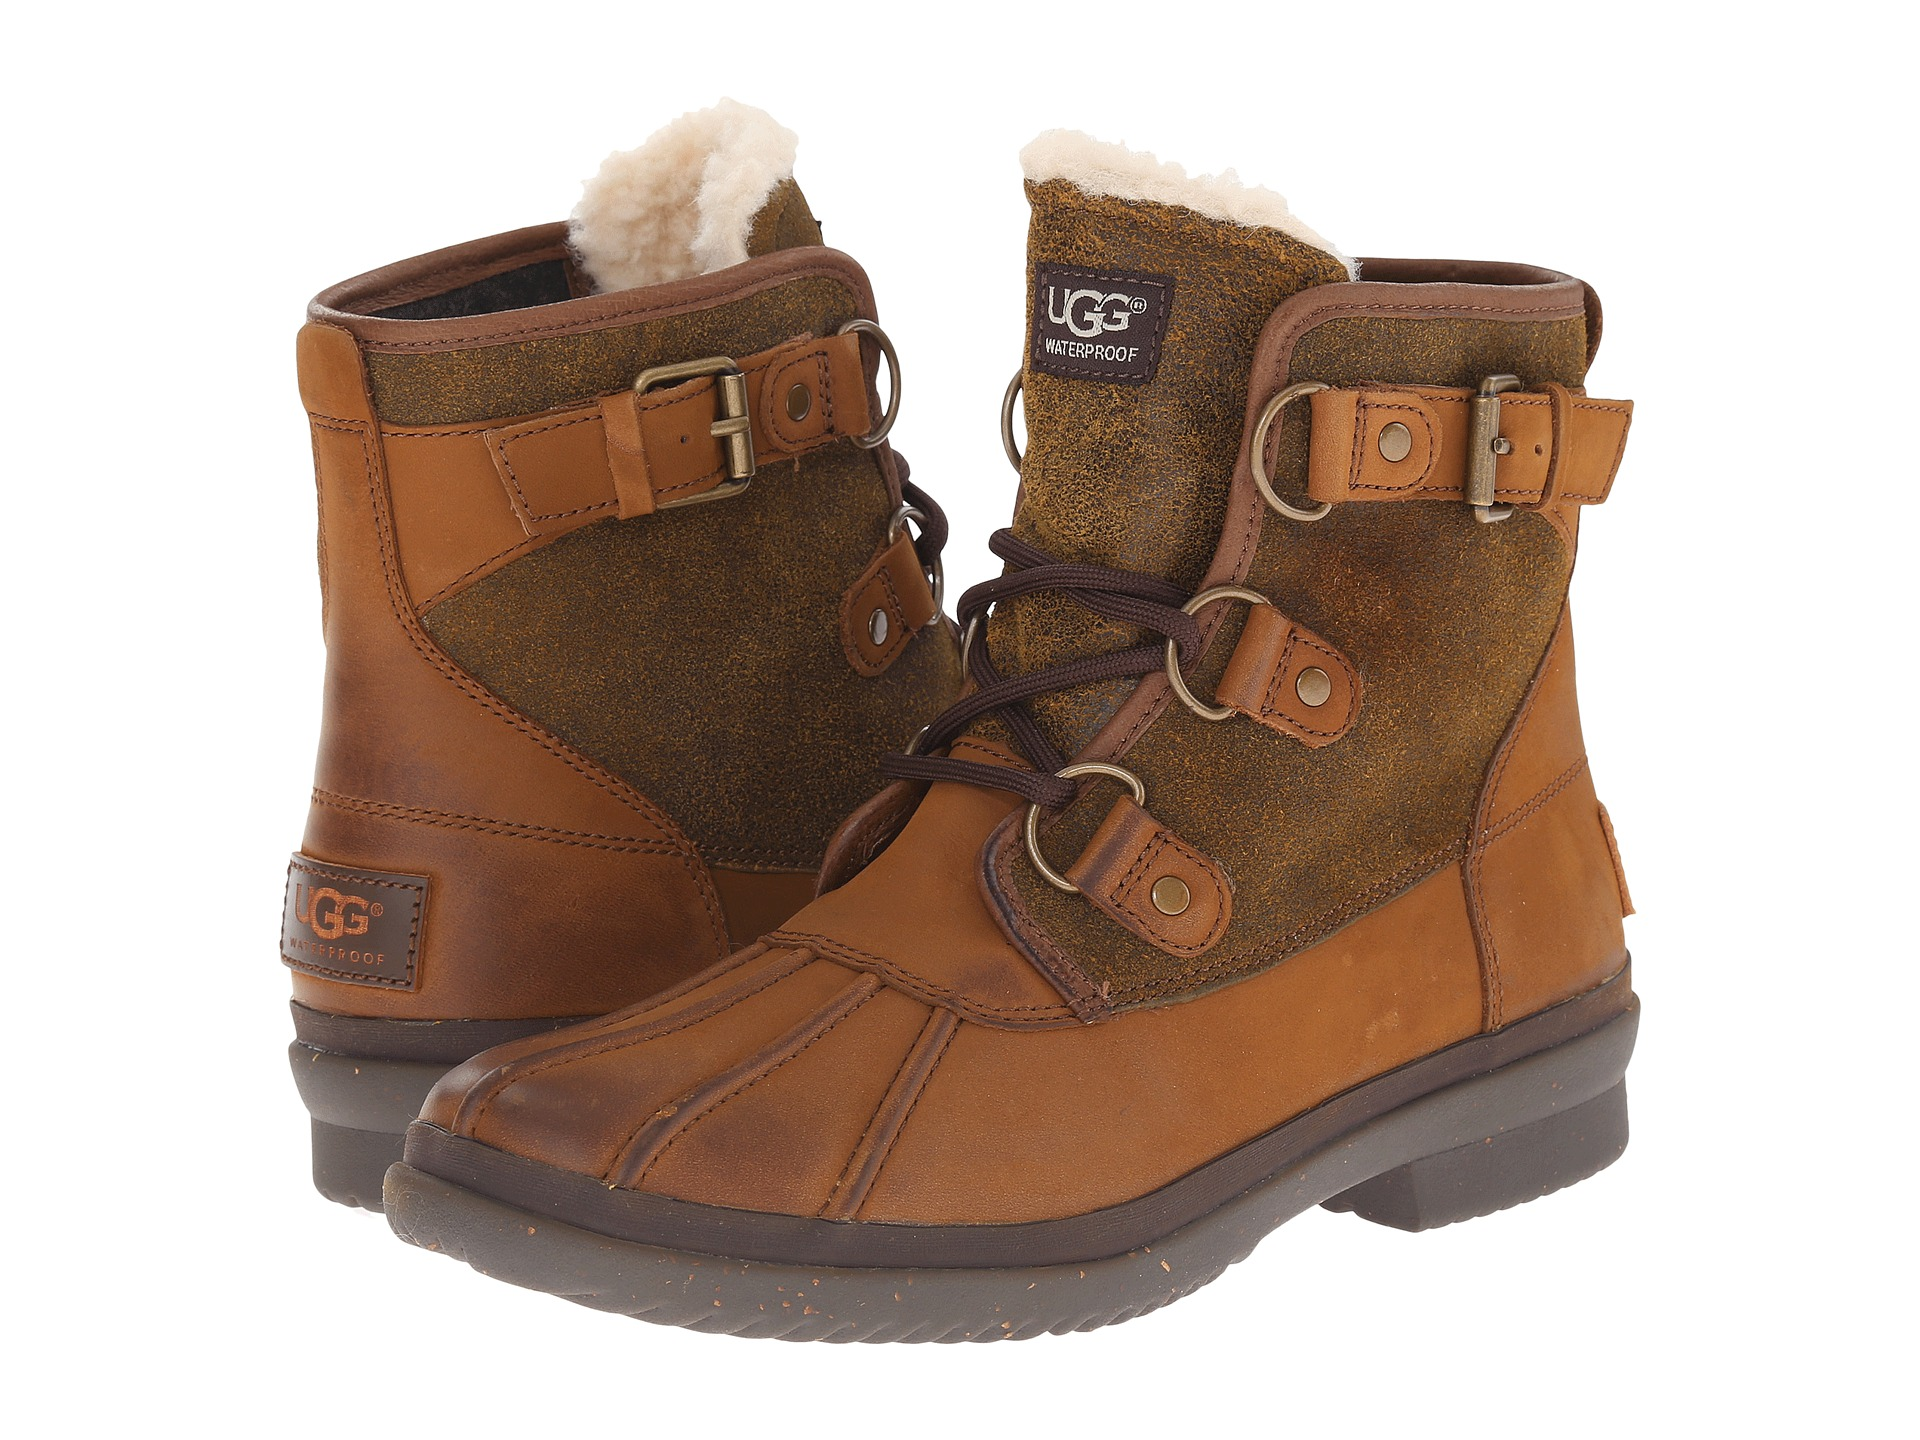 buy ugg boots ugg boot sale clearance ugg cheap boots site. Black Bedroom Furniture Sets. Home Design Ideas